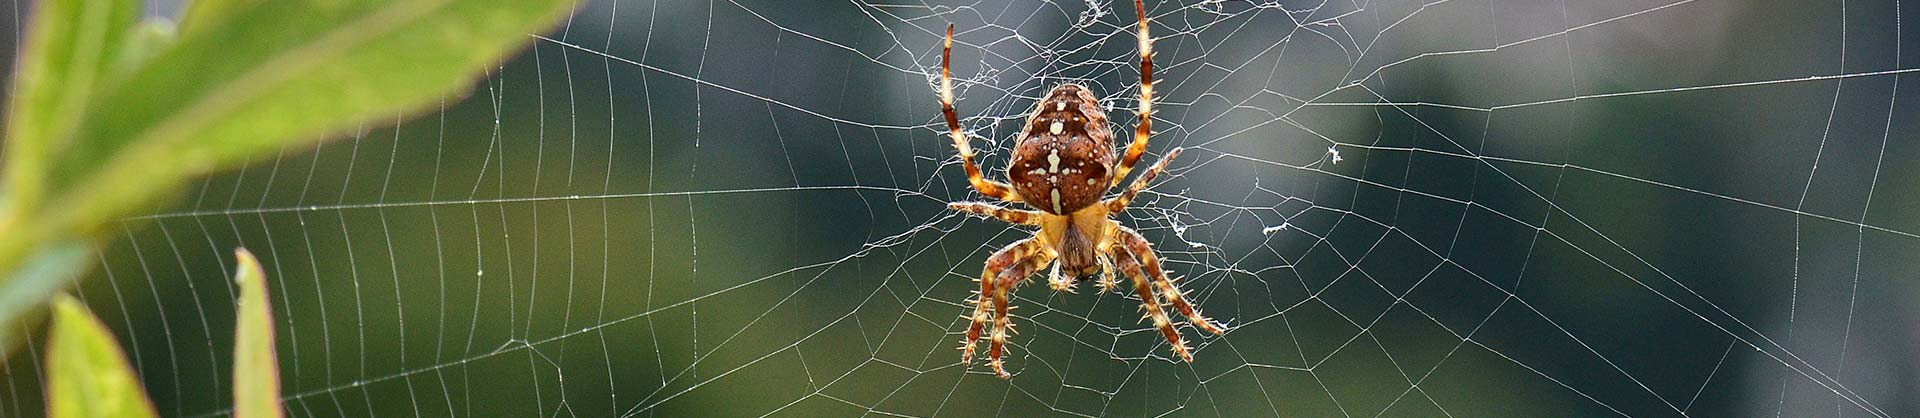 Spider Pest Control Newcastle